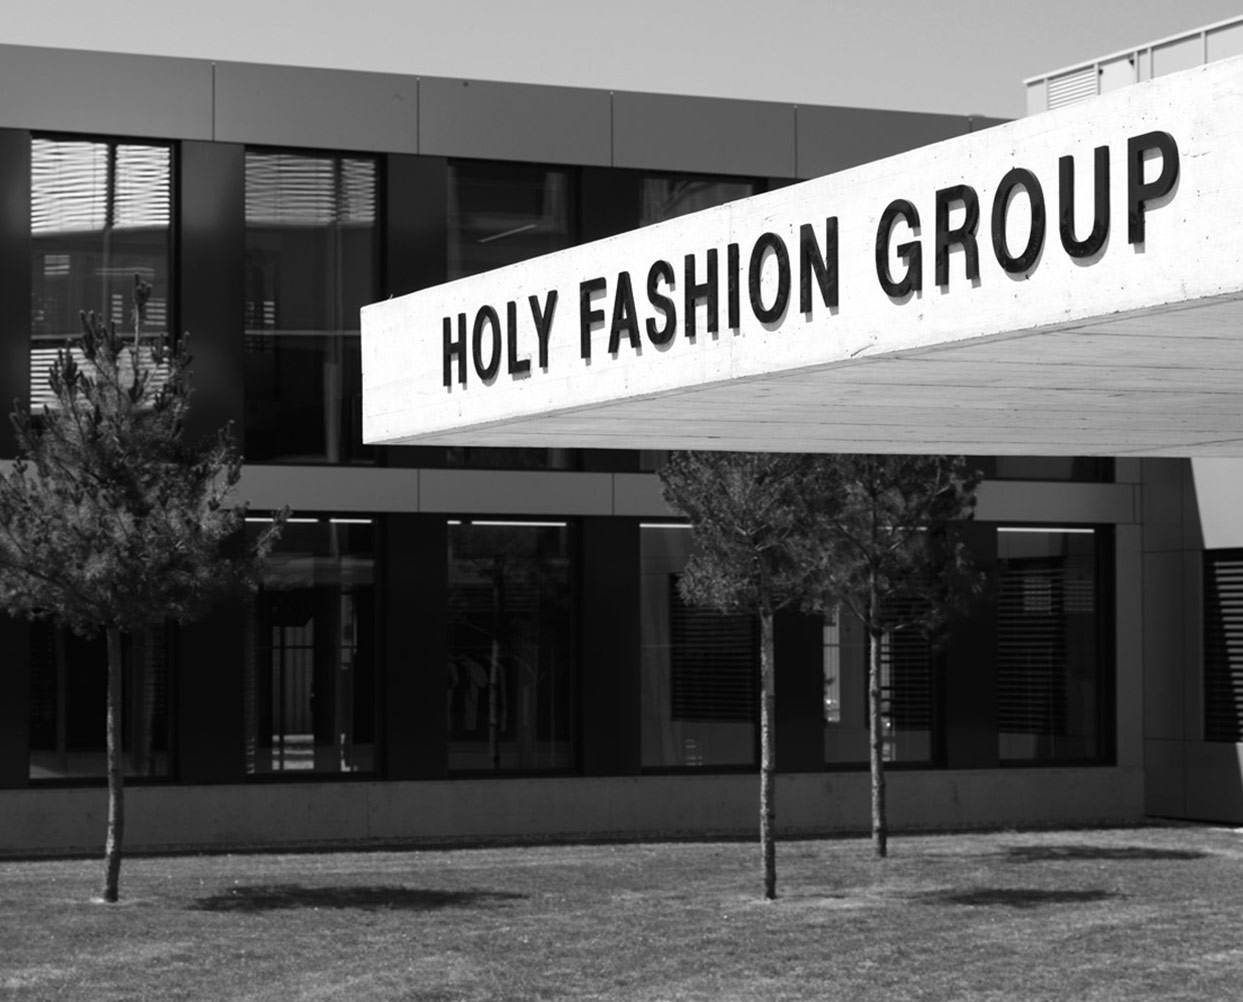 windsor brands were brought together under one roof at the holy fashion group head office in kreuzlingen although windsor gmbh remained in bielefeld